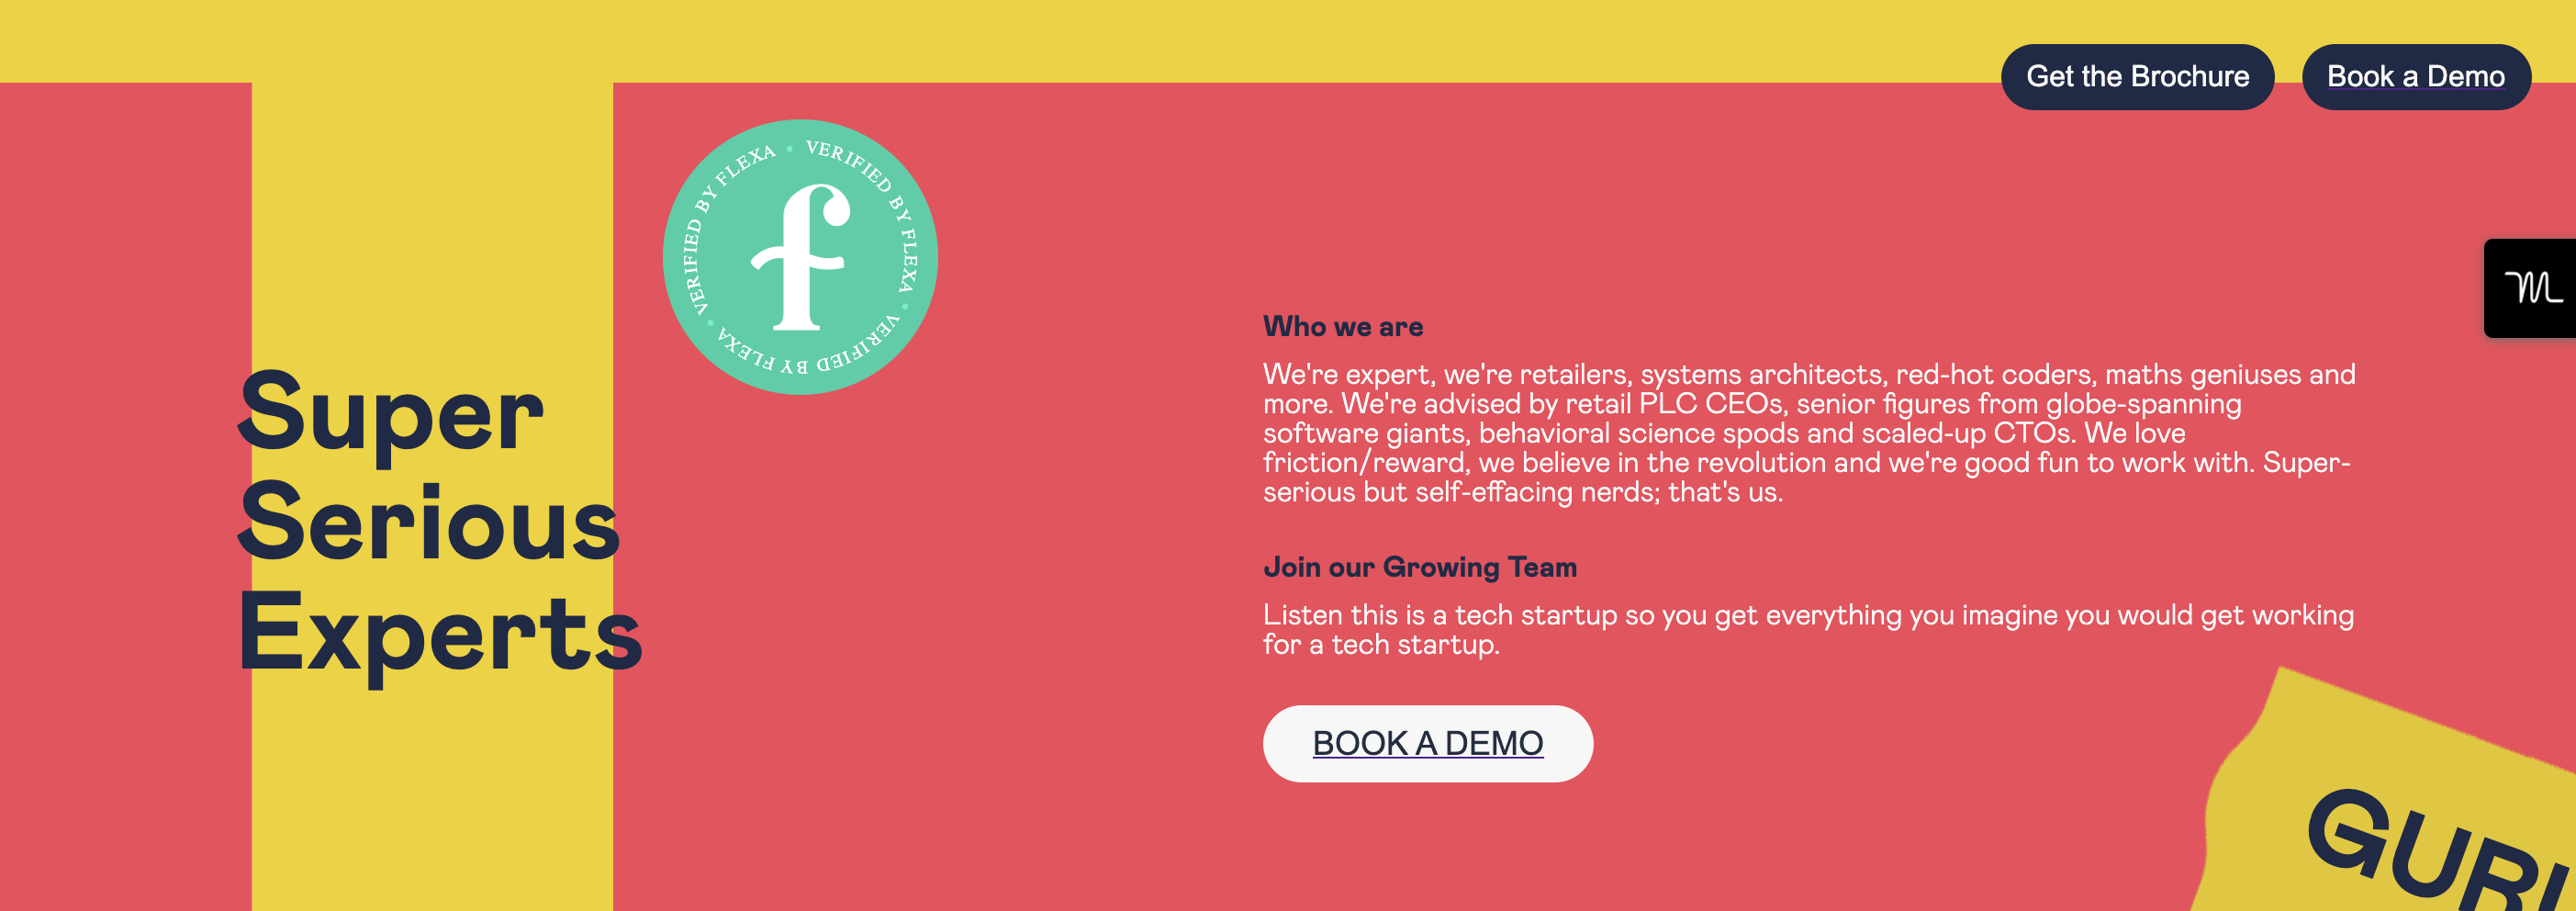 Uncrowd's careers page displaying the green Flexified seal of approval